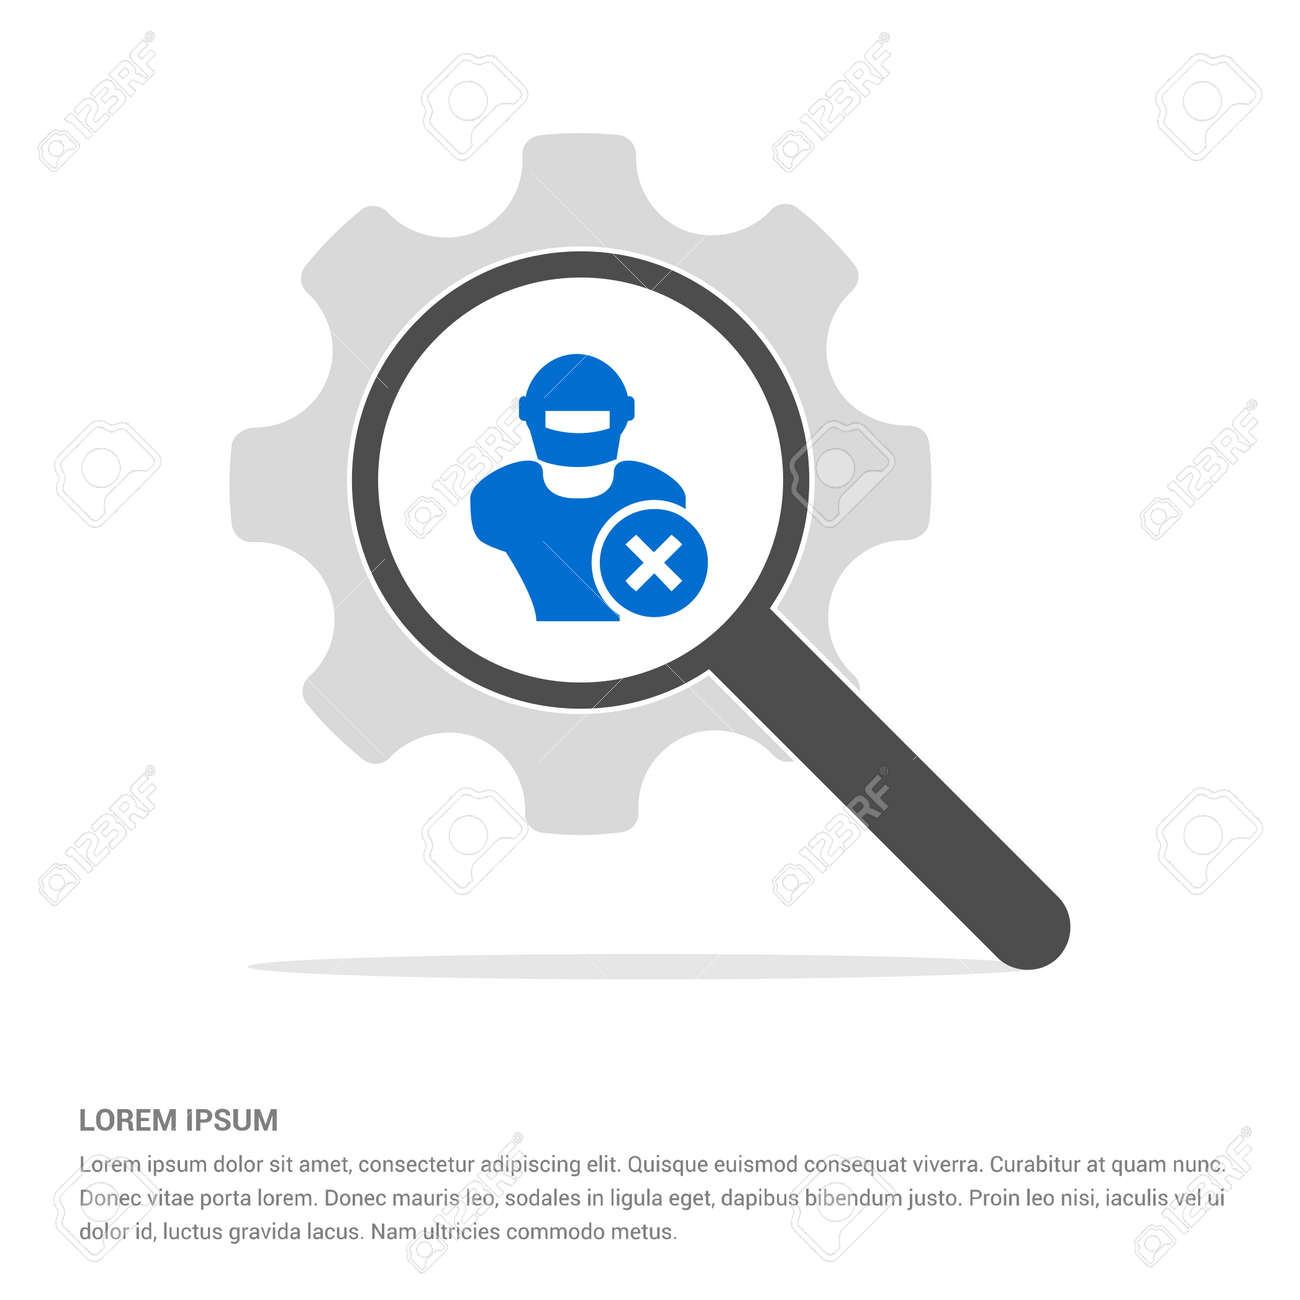 hacker icon free vector icon royalty free cliparts vectors and stock illustration image 112628691 123rf com